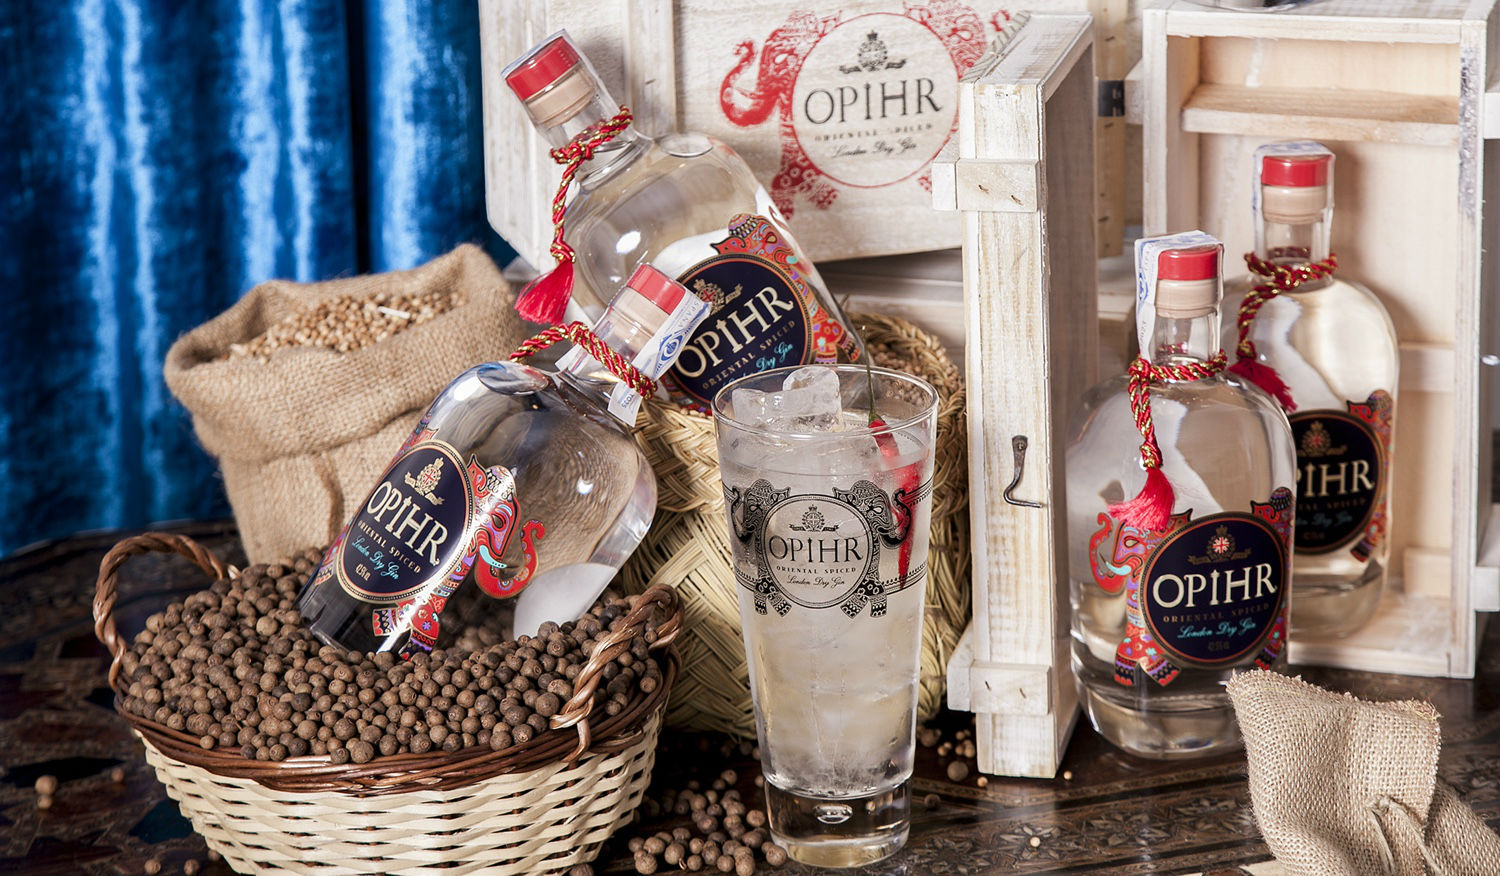 Opihr World Adventure Cocktail Competition ya cuenta con finalistas españoles